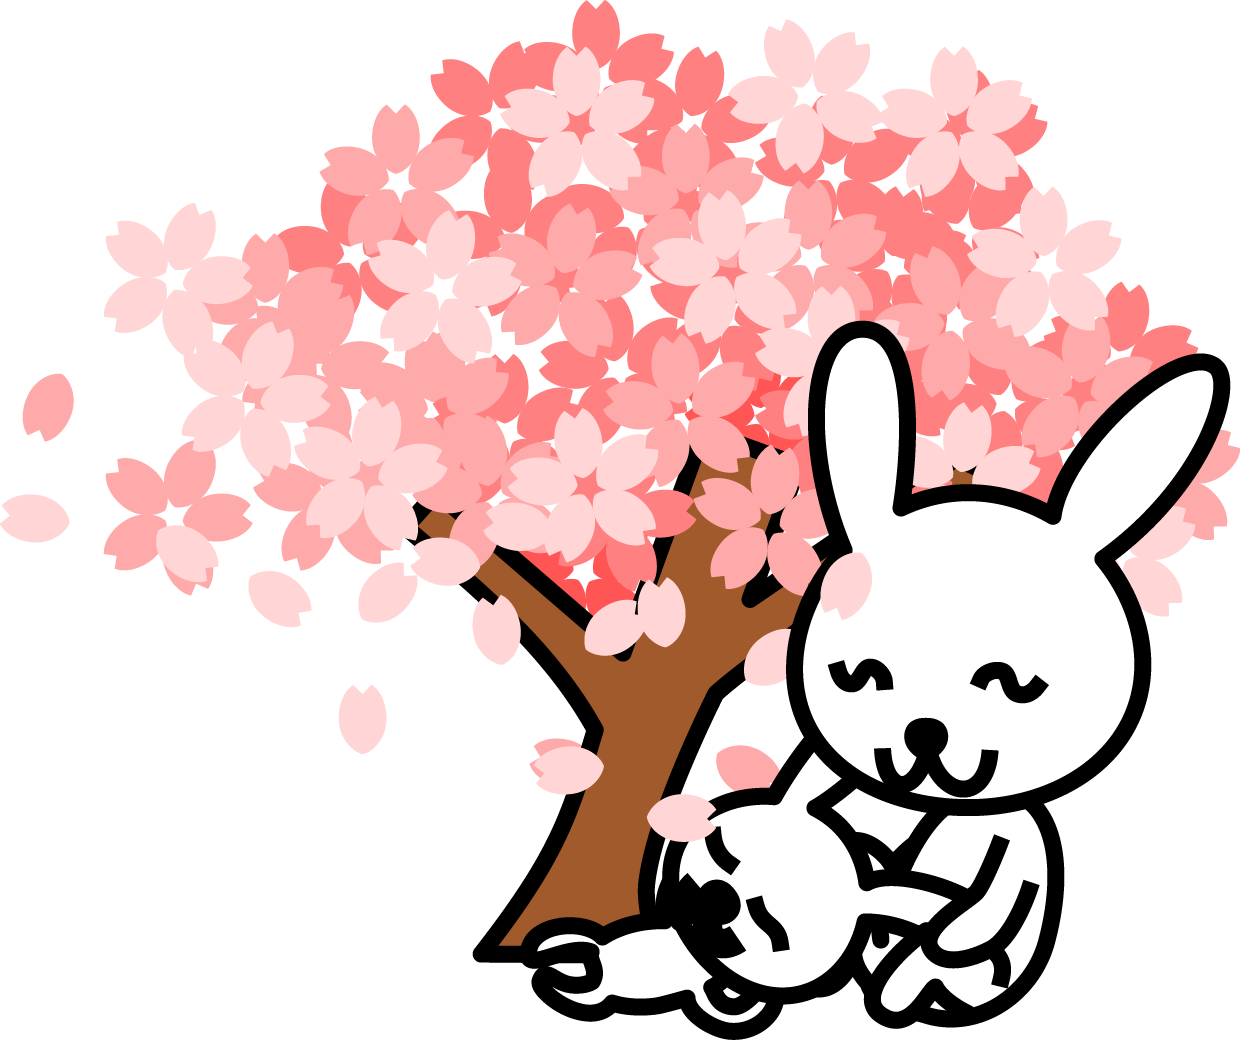 Cherry blossom vector png. Clipart at getdrawings com